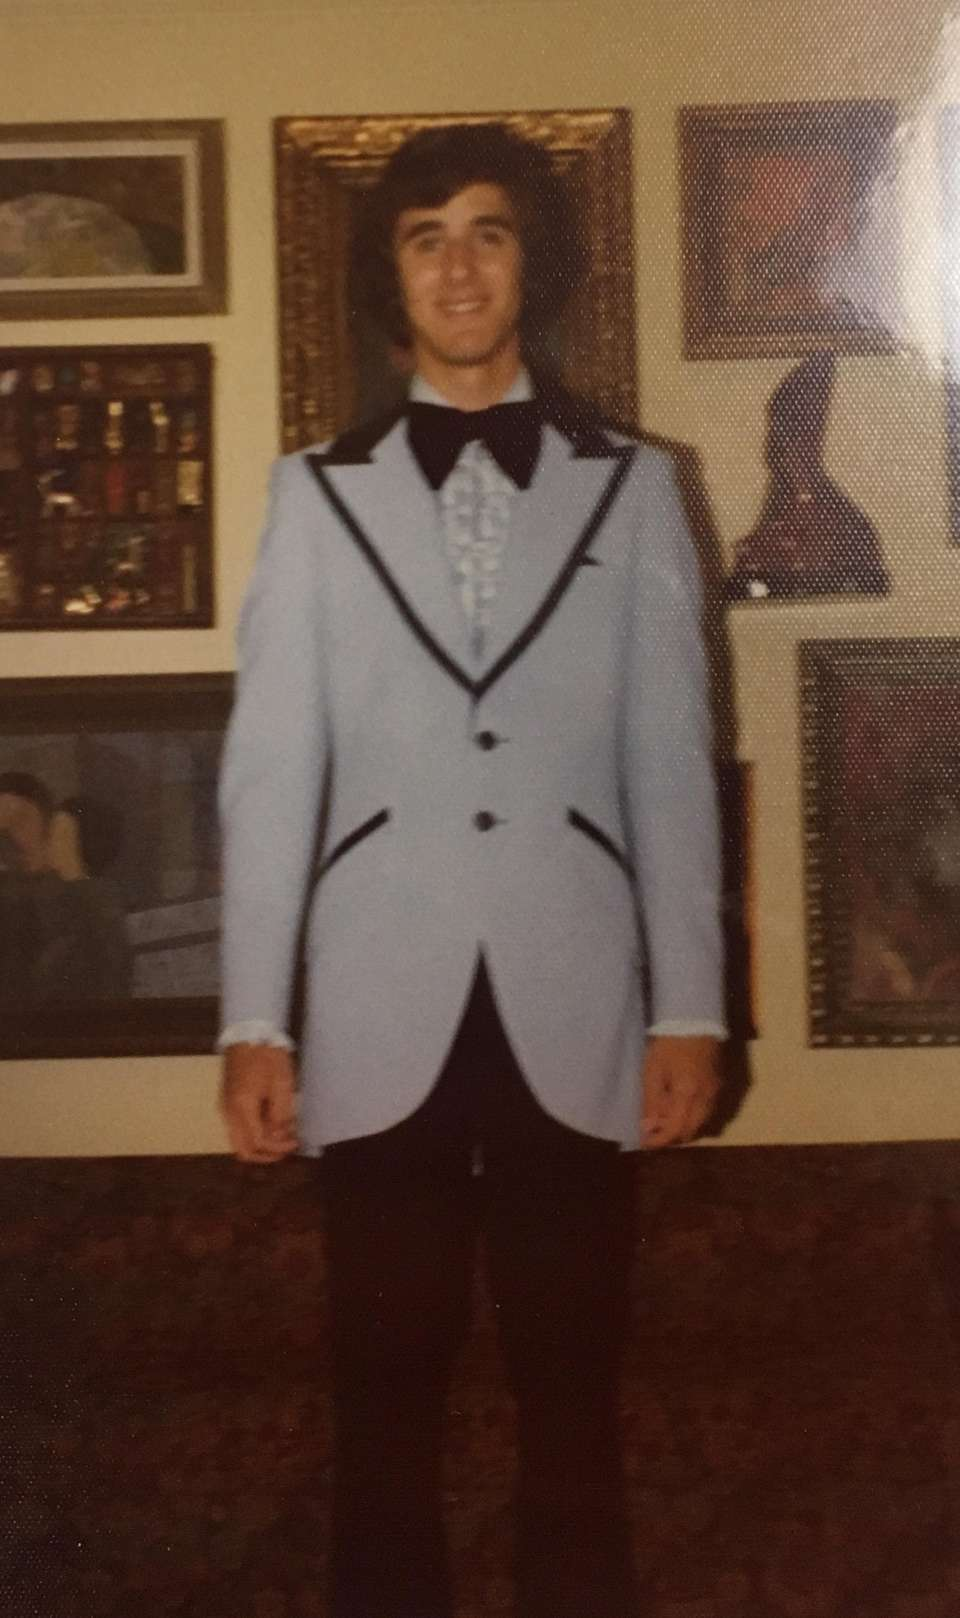 David Weiss dressed his best for the Elmont